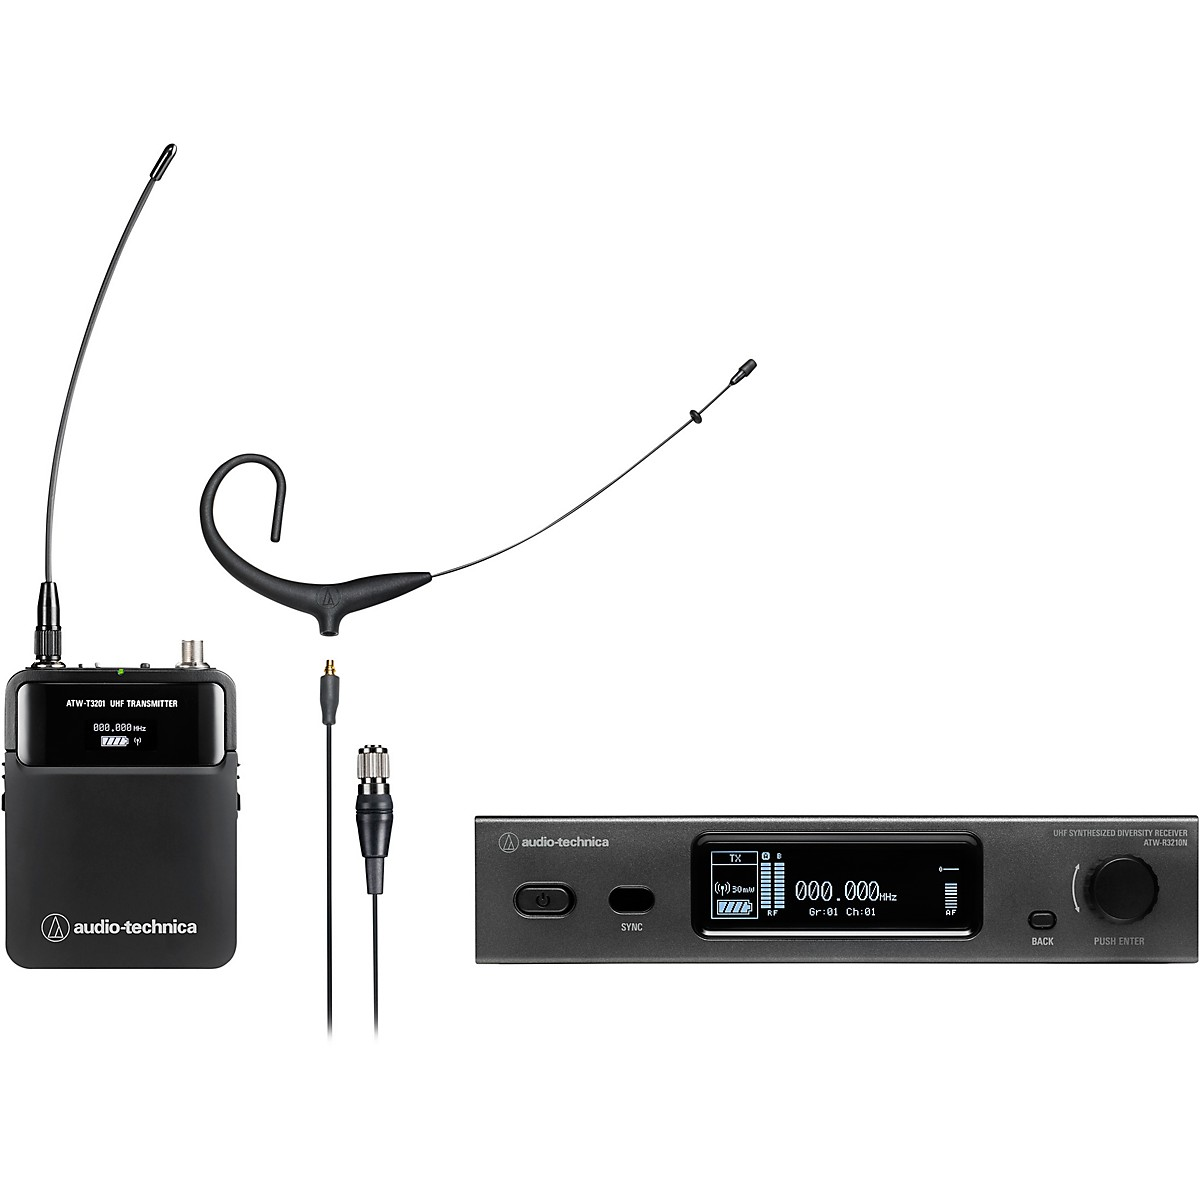 Audio-Technica 3000 Series (4th Gen) Network Enabled UHF Wireless with BP892xcH MicroSet Omnidirectional Condenser Headworn Microphone